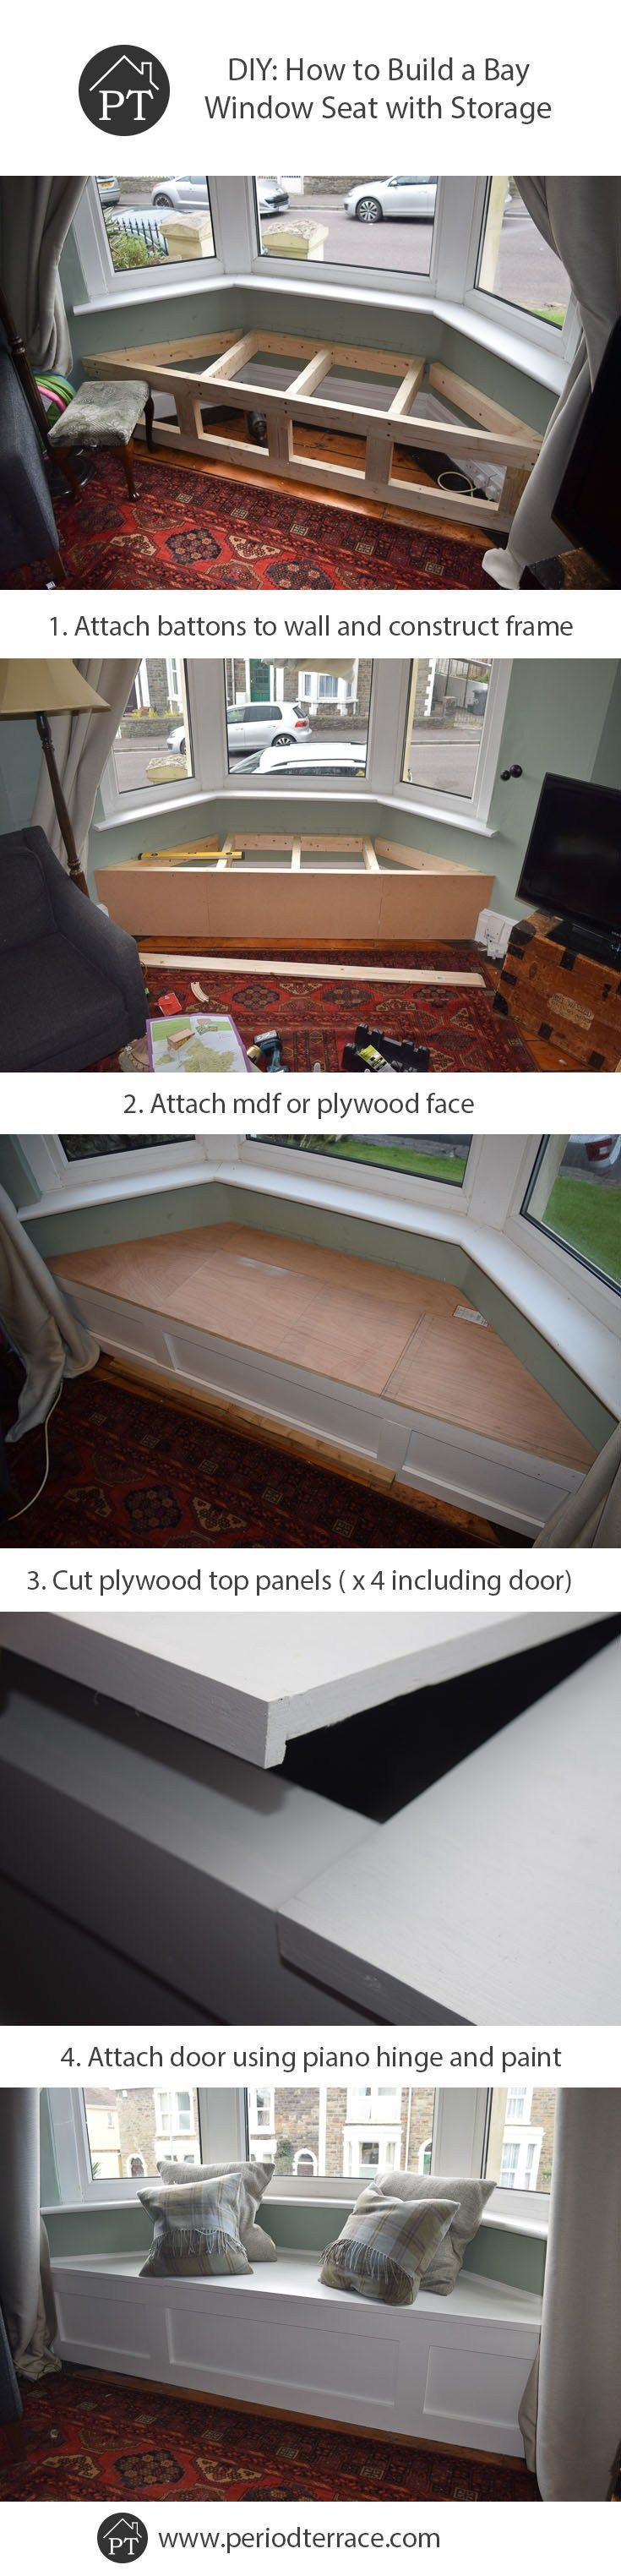 Bed beside window ideas  steps for how to build a bay window seat with storage  easy home